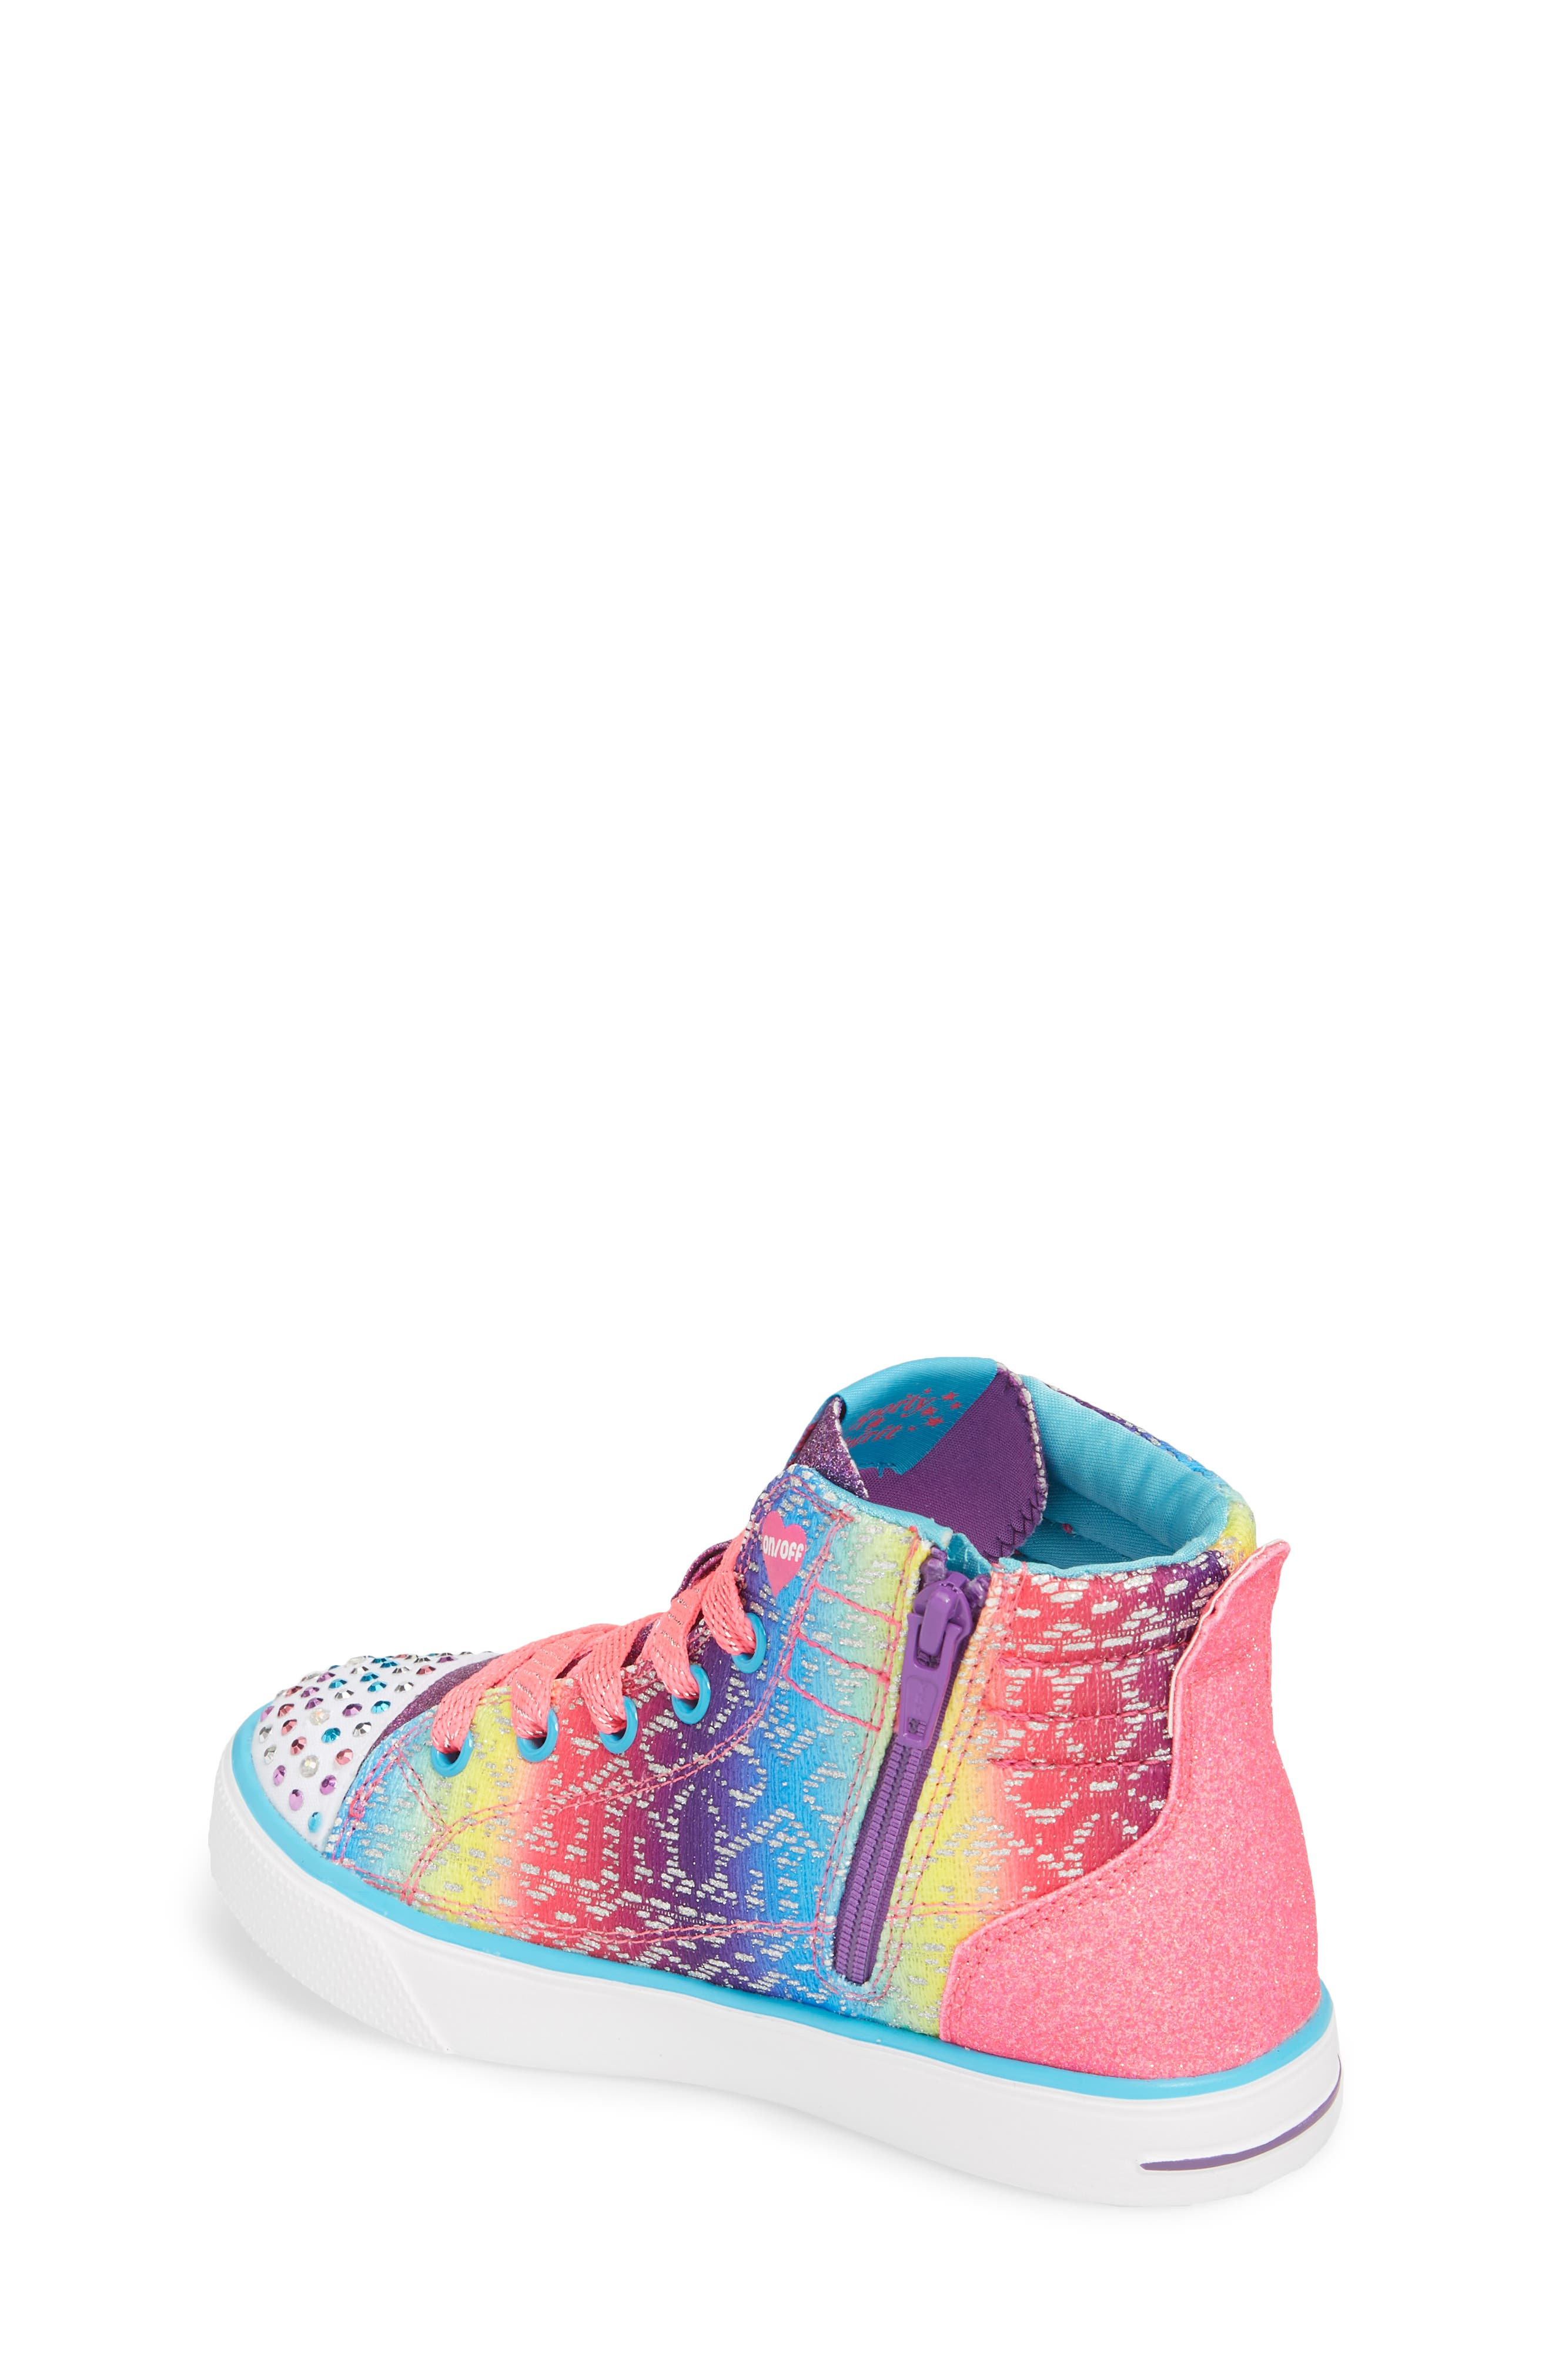 Twinkle Toes Breeze 2.0 Light-Up High Top Sneaker,                             Alternate thumbnail 2, color,                             484